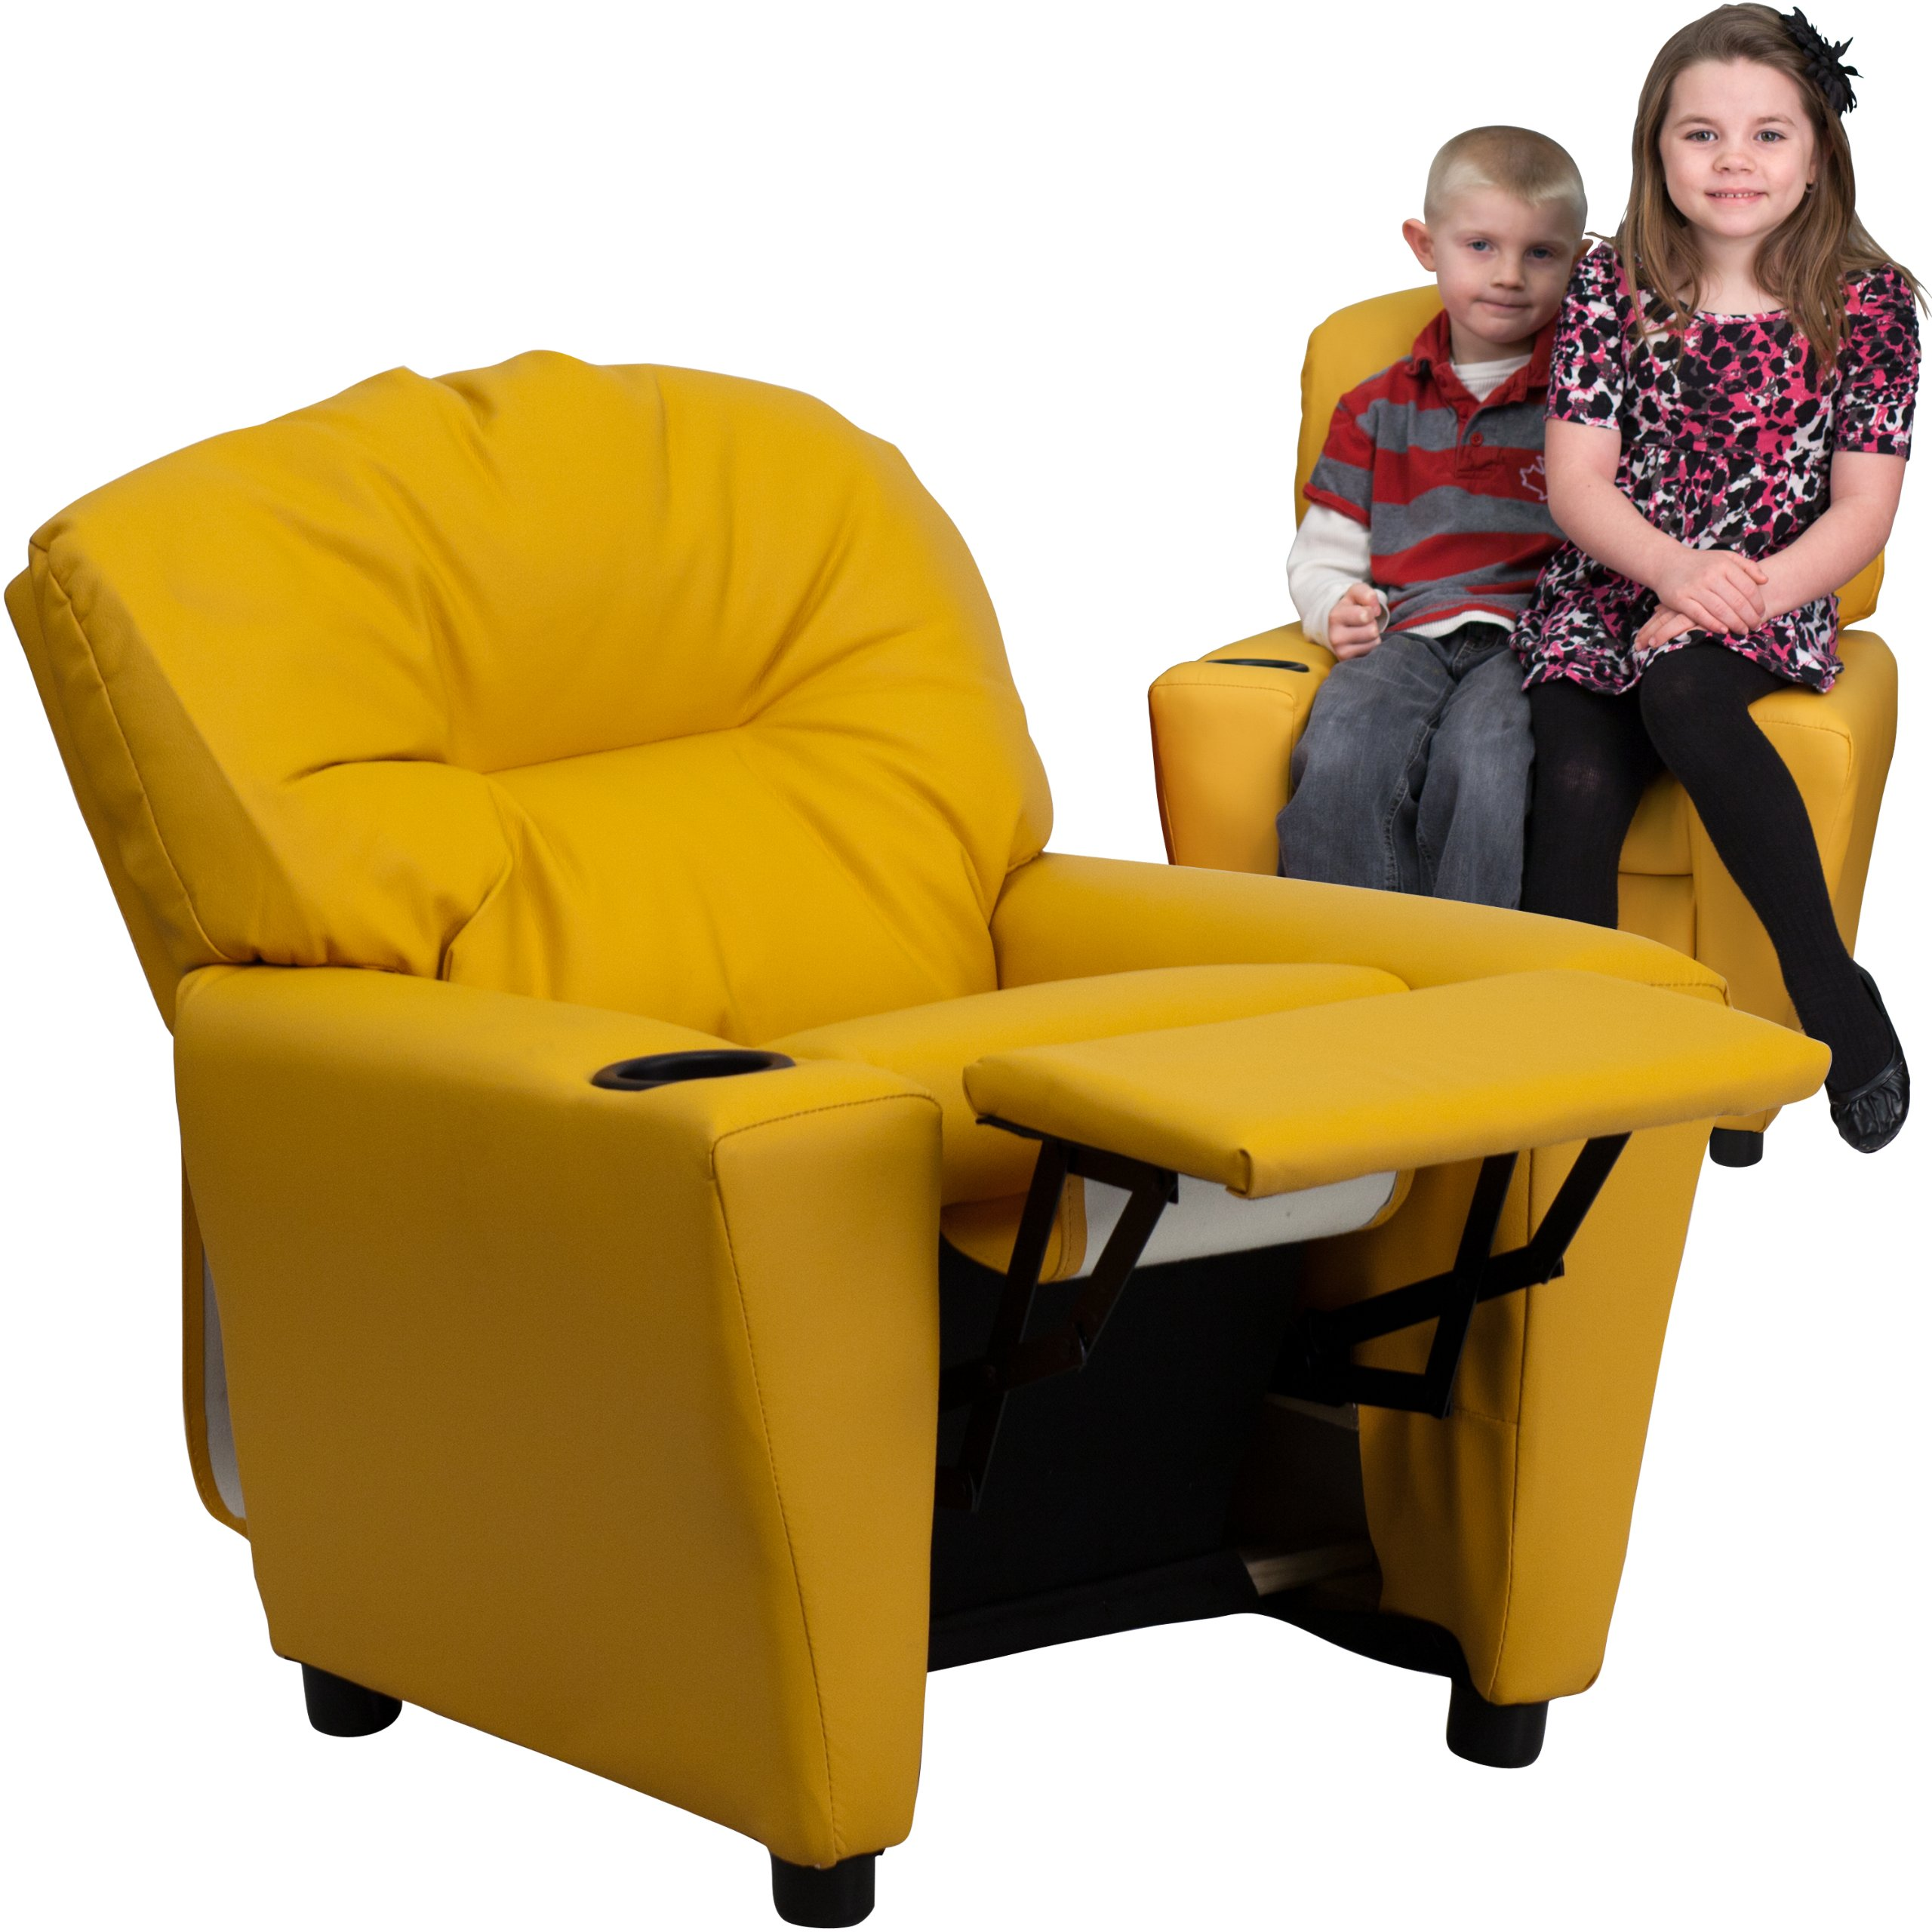 Winston Direct Kids' Series Contemporary Yellow Vinyl Recliner with Cup Holder